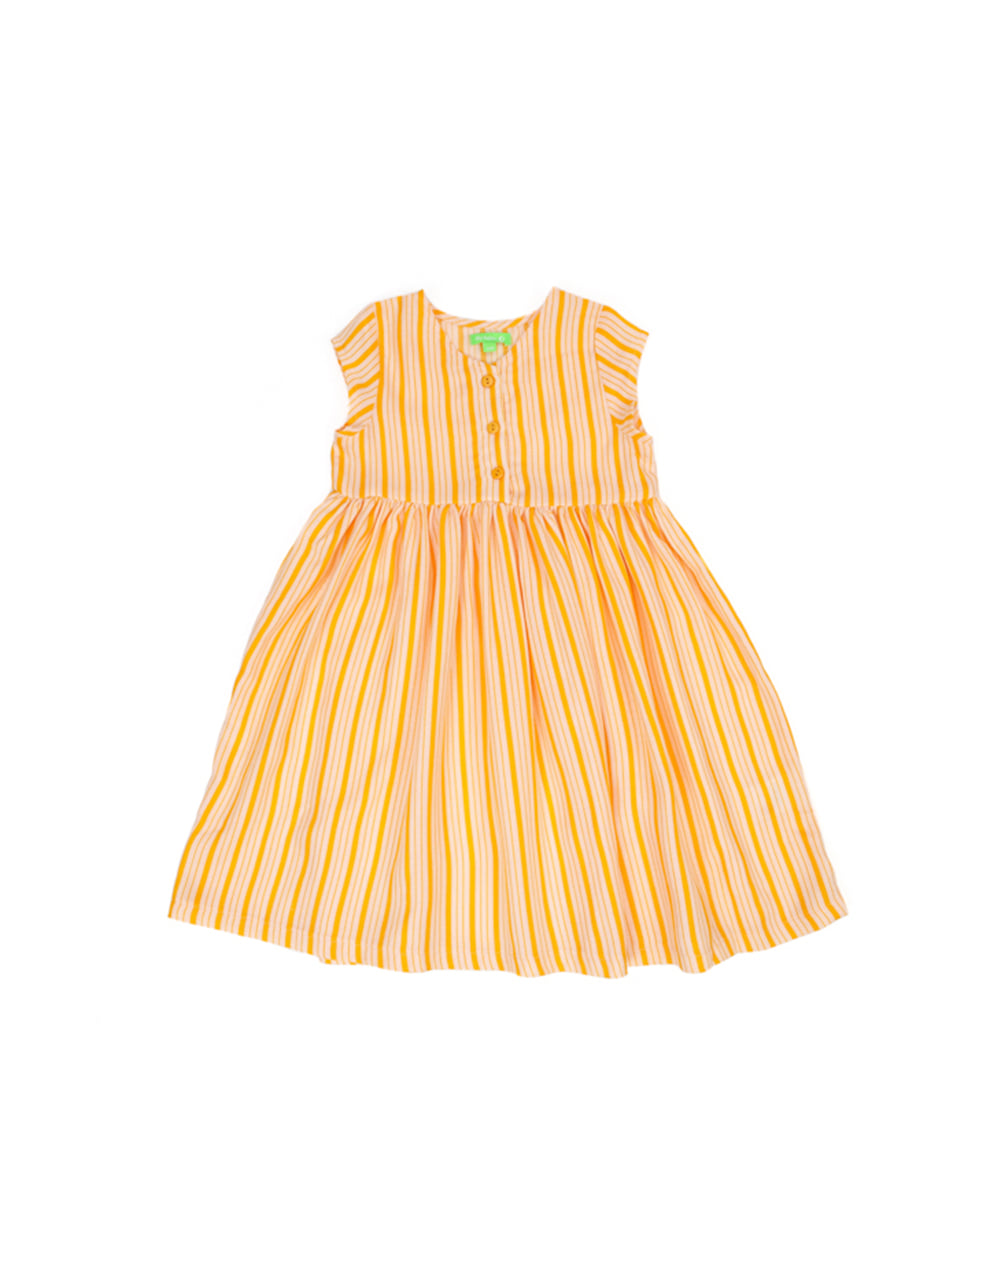 LILY BALOU  Jozefien Dress    Juicy Stripes